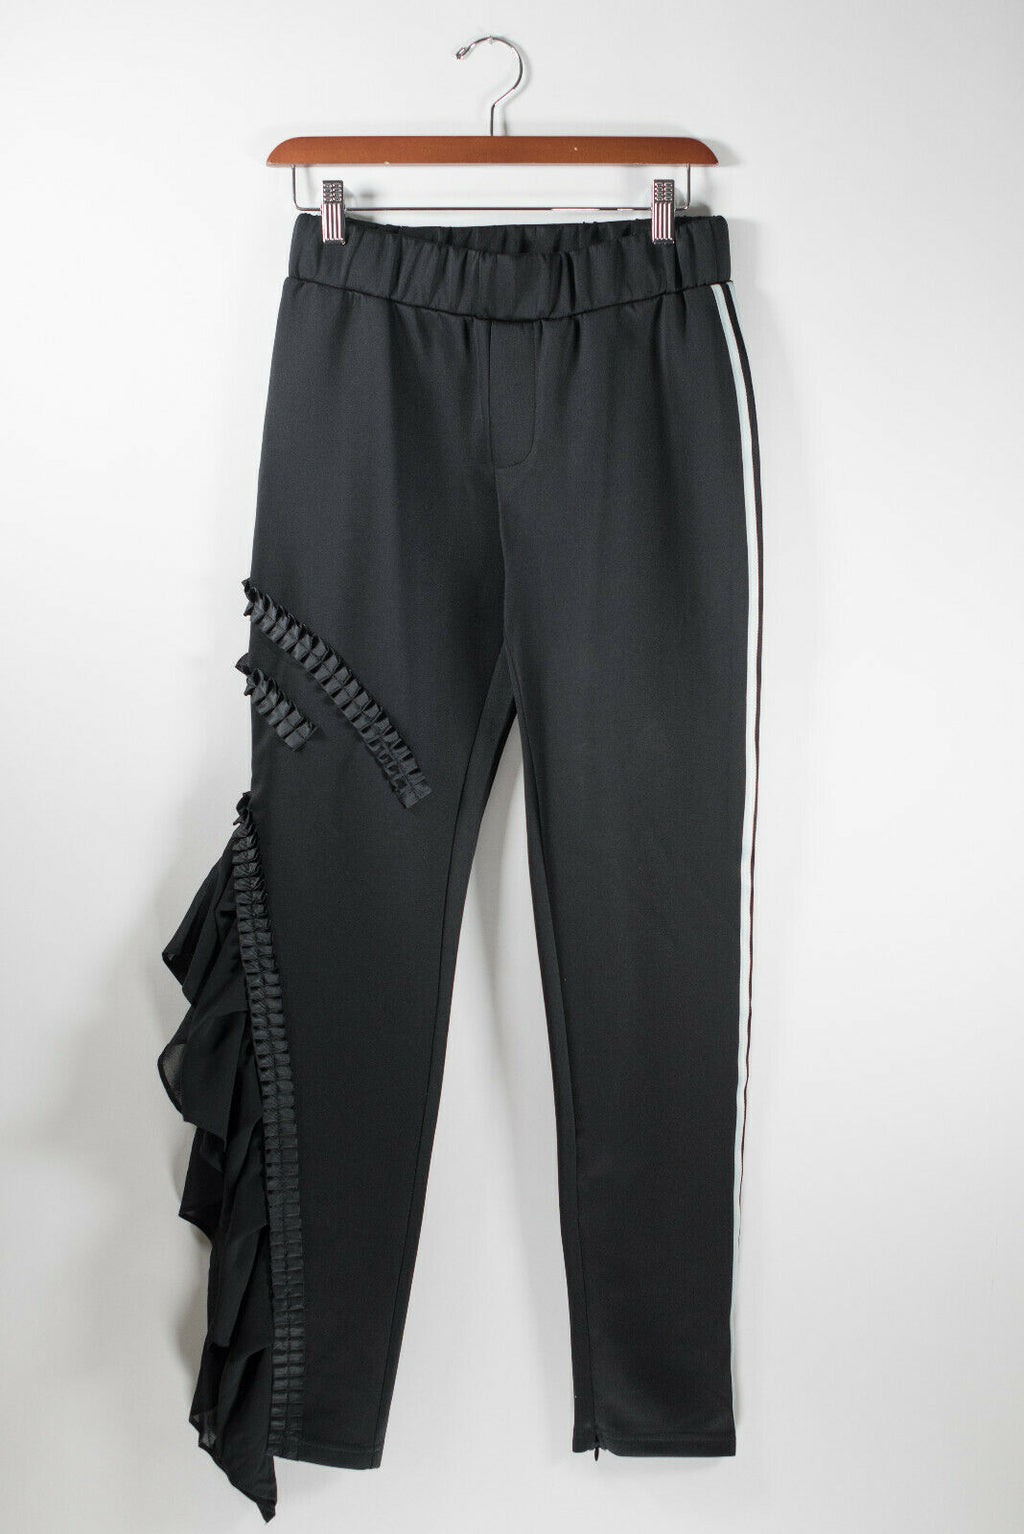 Womens Medium Black Trousers Applique Flare Ruffle Striped Stretch Track Pants